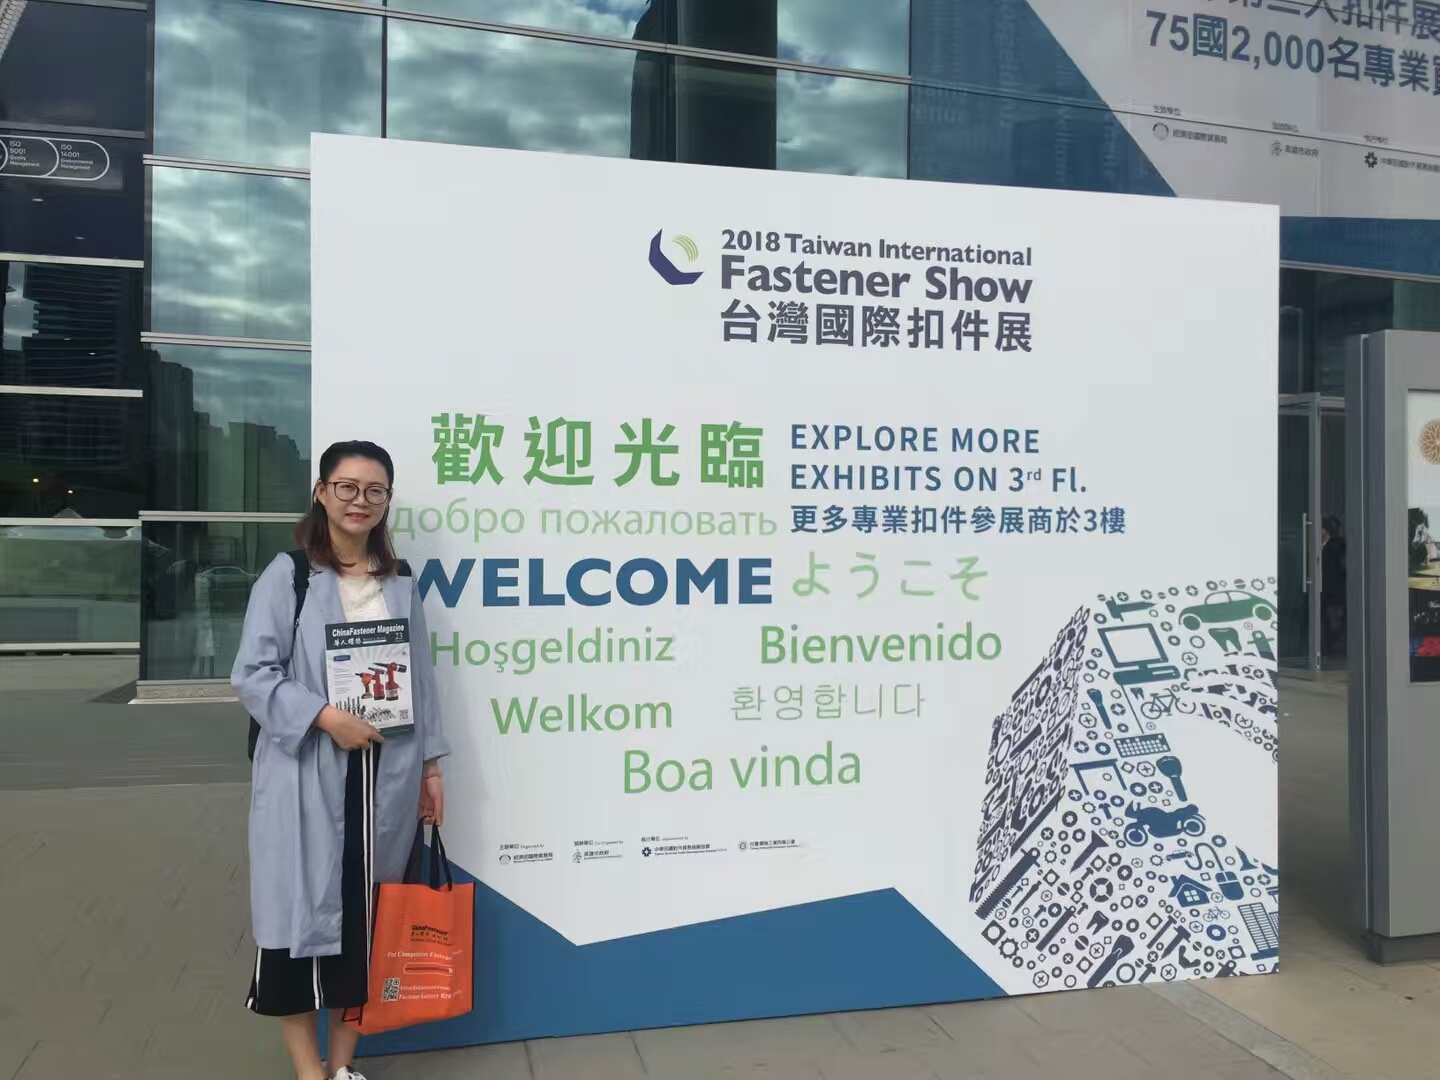 Taiwan International Fastener Show kicked off yesterday